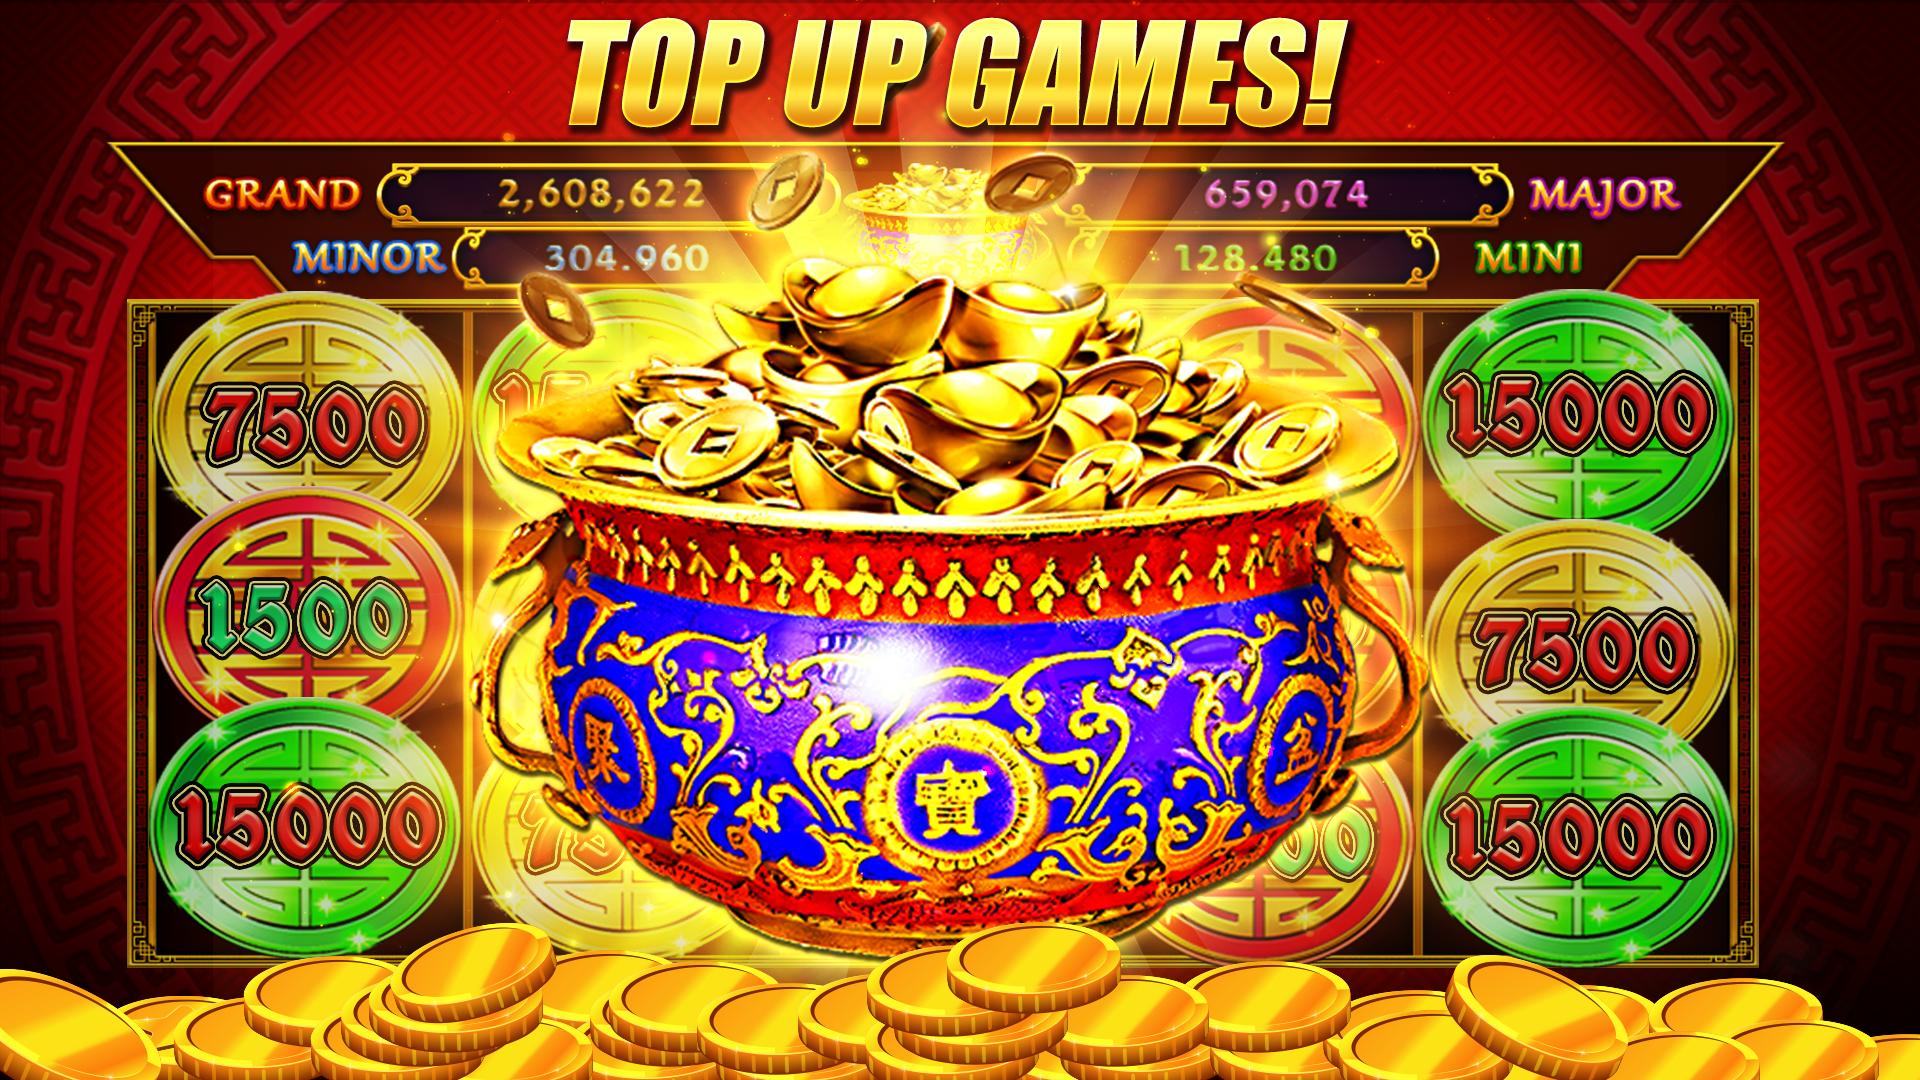 Grand Jackpot Slots Pop Vegas Casino Free Games 1.0.44 Screenshot 18